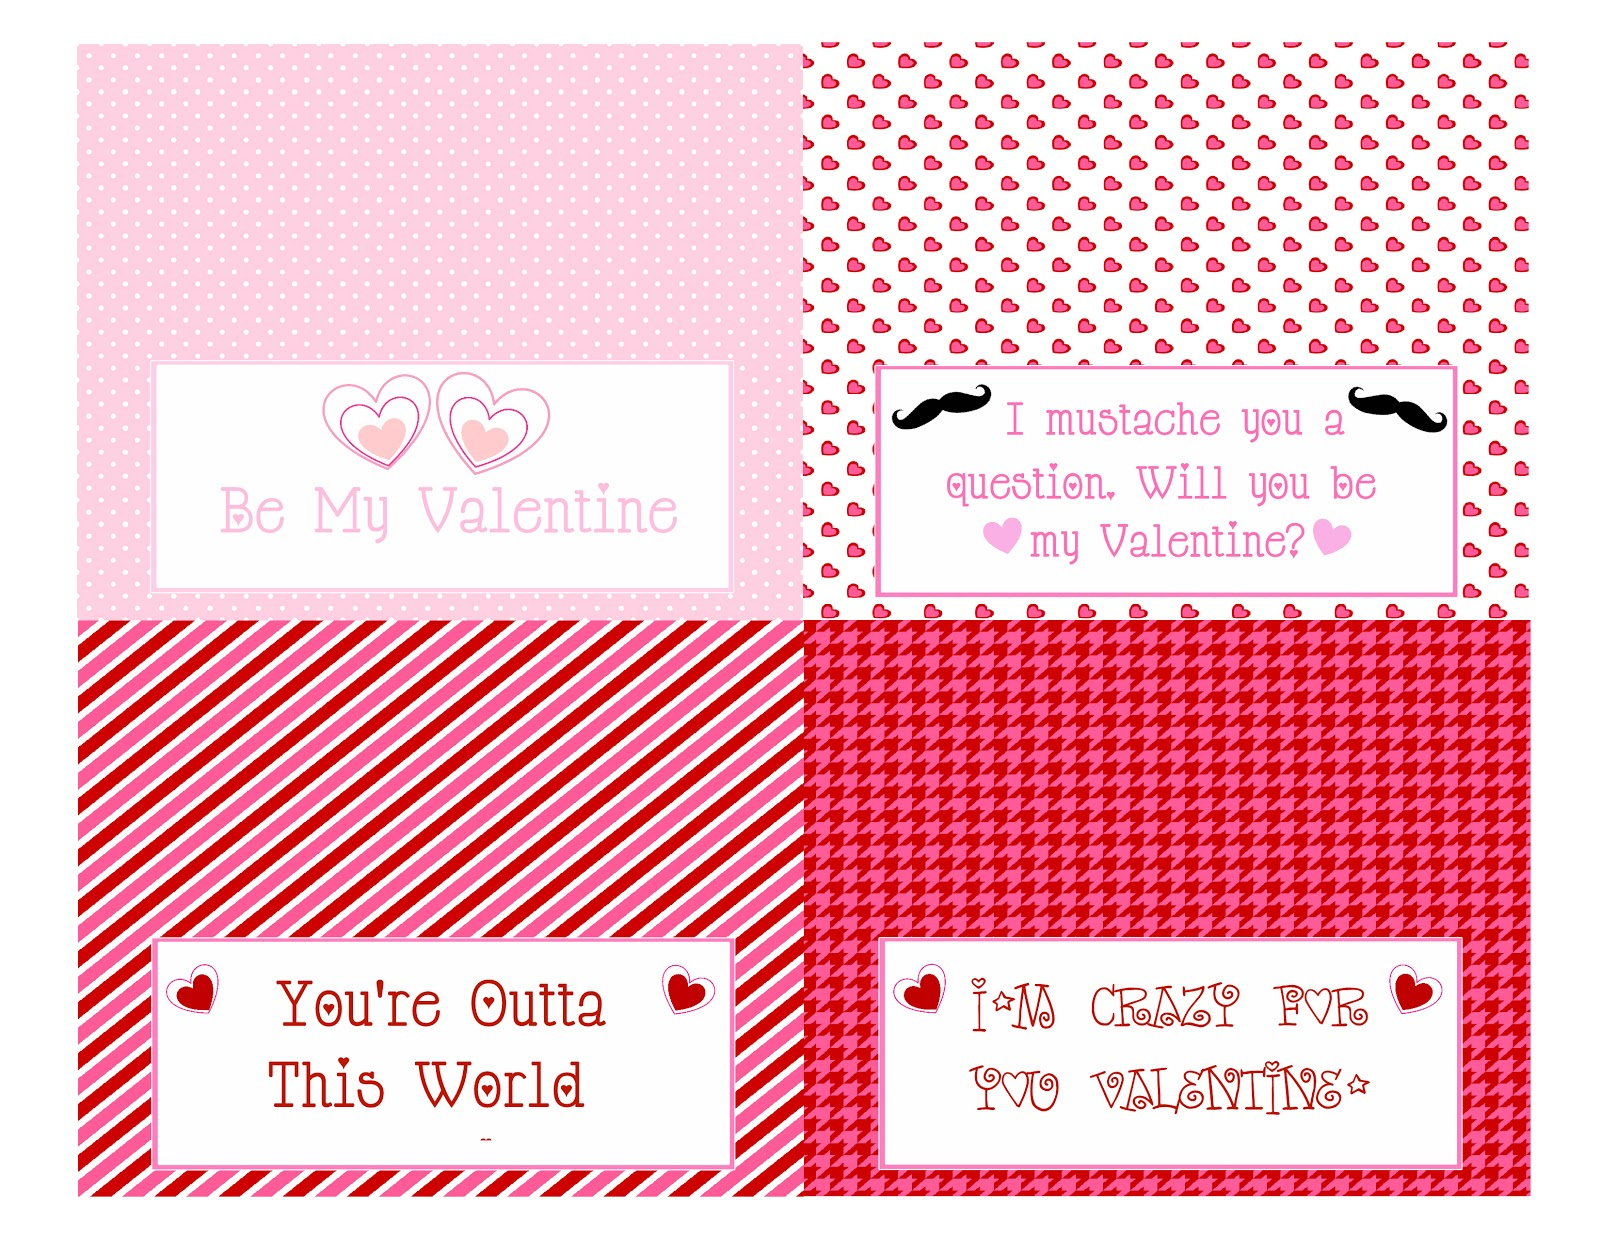 photograph regarding Free Printable Bag Toppers Templates known as S N Prepare: Valentines Deal with bag topper (No cost printables)